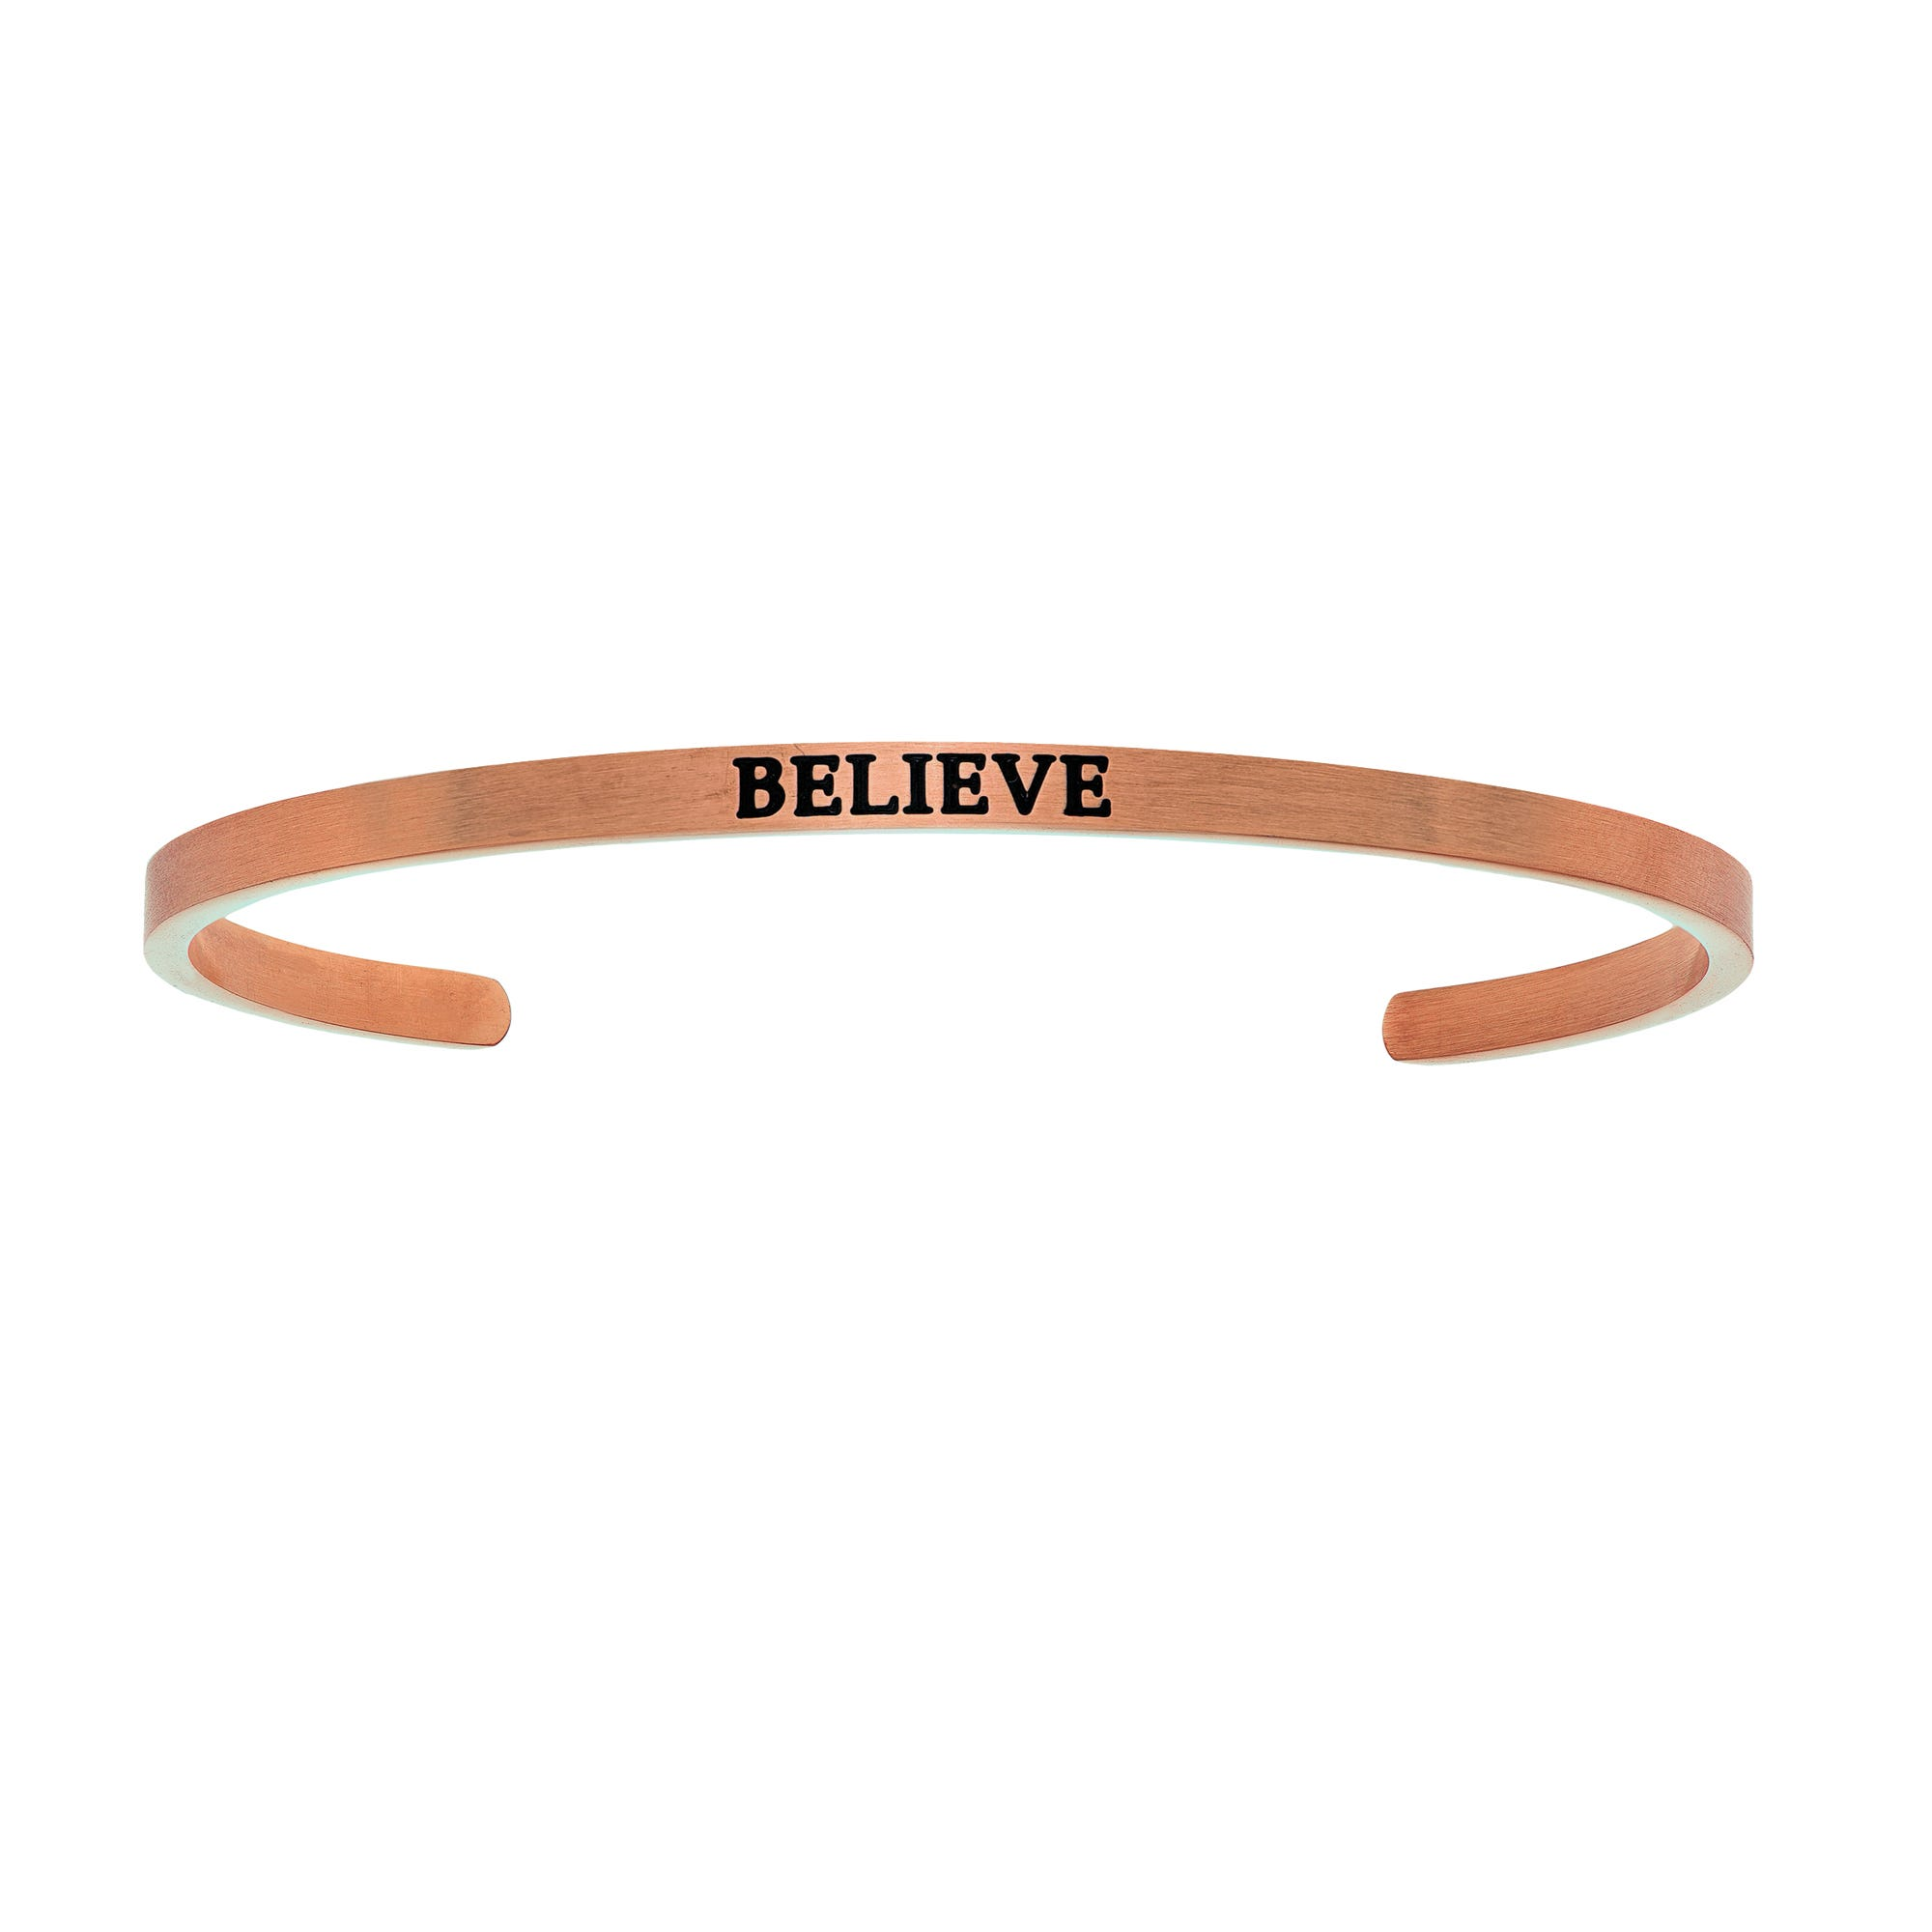 Believe. Intuitions Cuff Bracelet in Pink Stainless Steel